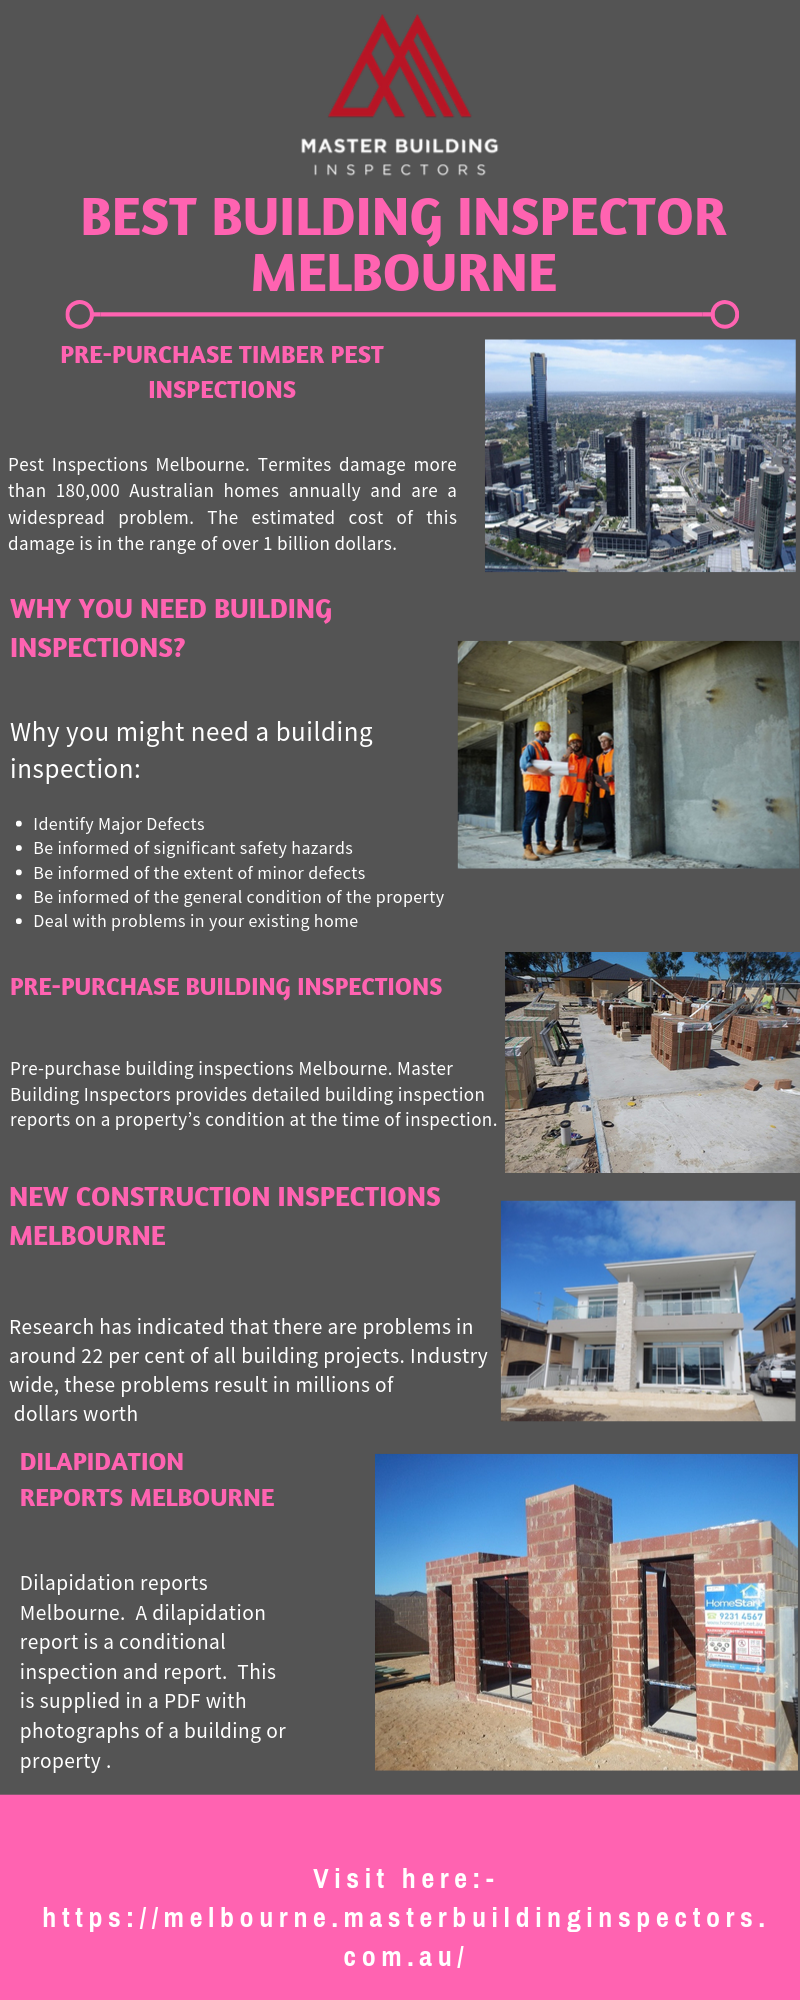 One of the Best Building Inspector Melbourne